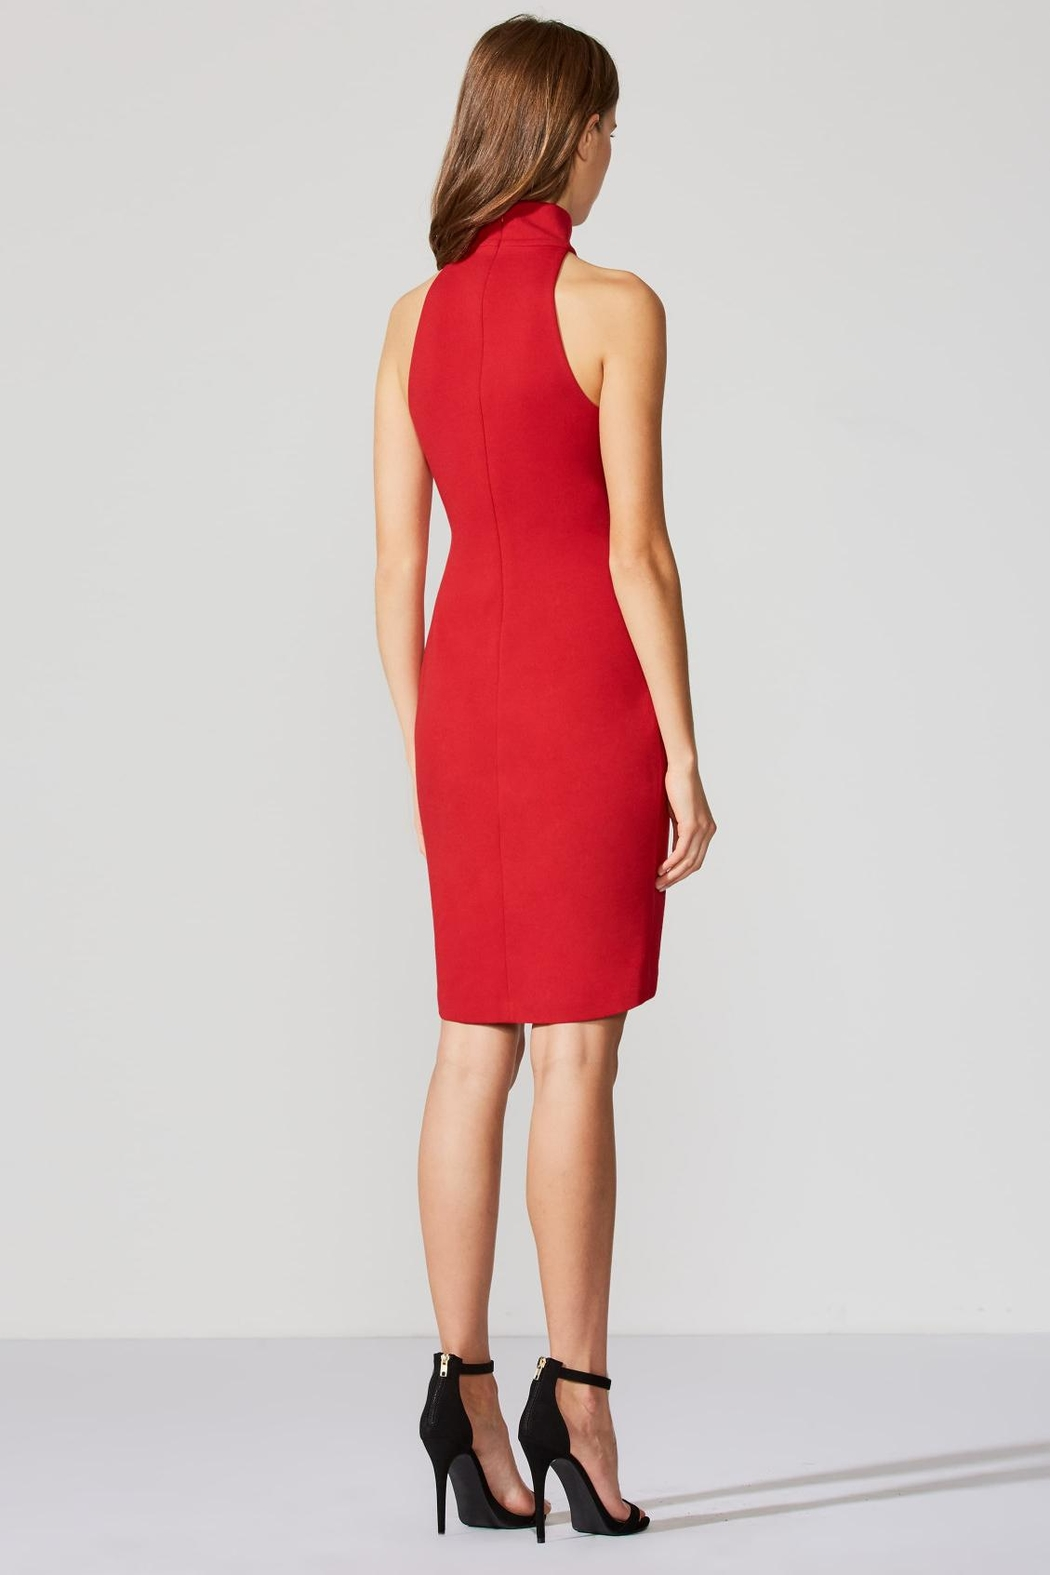 Bailey 44 Ponte Red Dress - Front Full Image